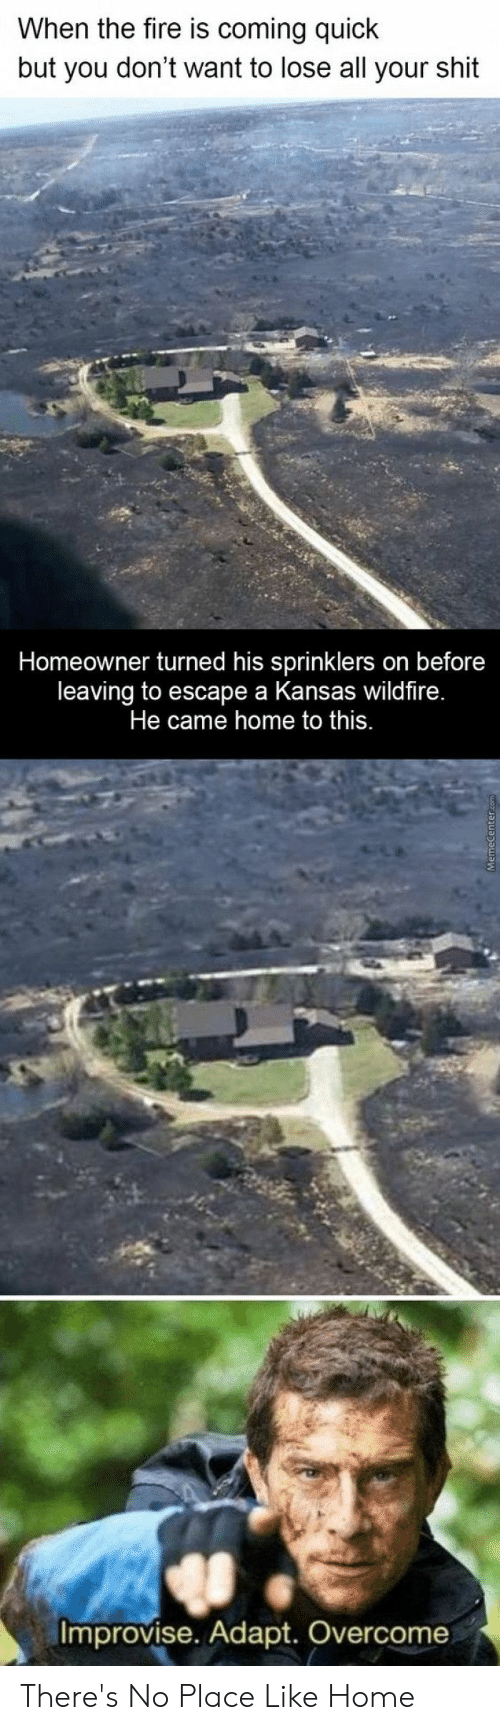 Fire, Shit, and Home: When the fire is coming quick  but you don't want to lose all your shit  Homeowner turned his sprinklers on before  leaving to escape a Kansas wildfire.  Improvise. Adapt. Overcome There's No Place Like Home